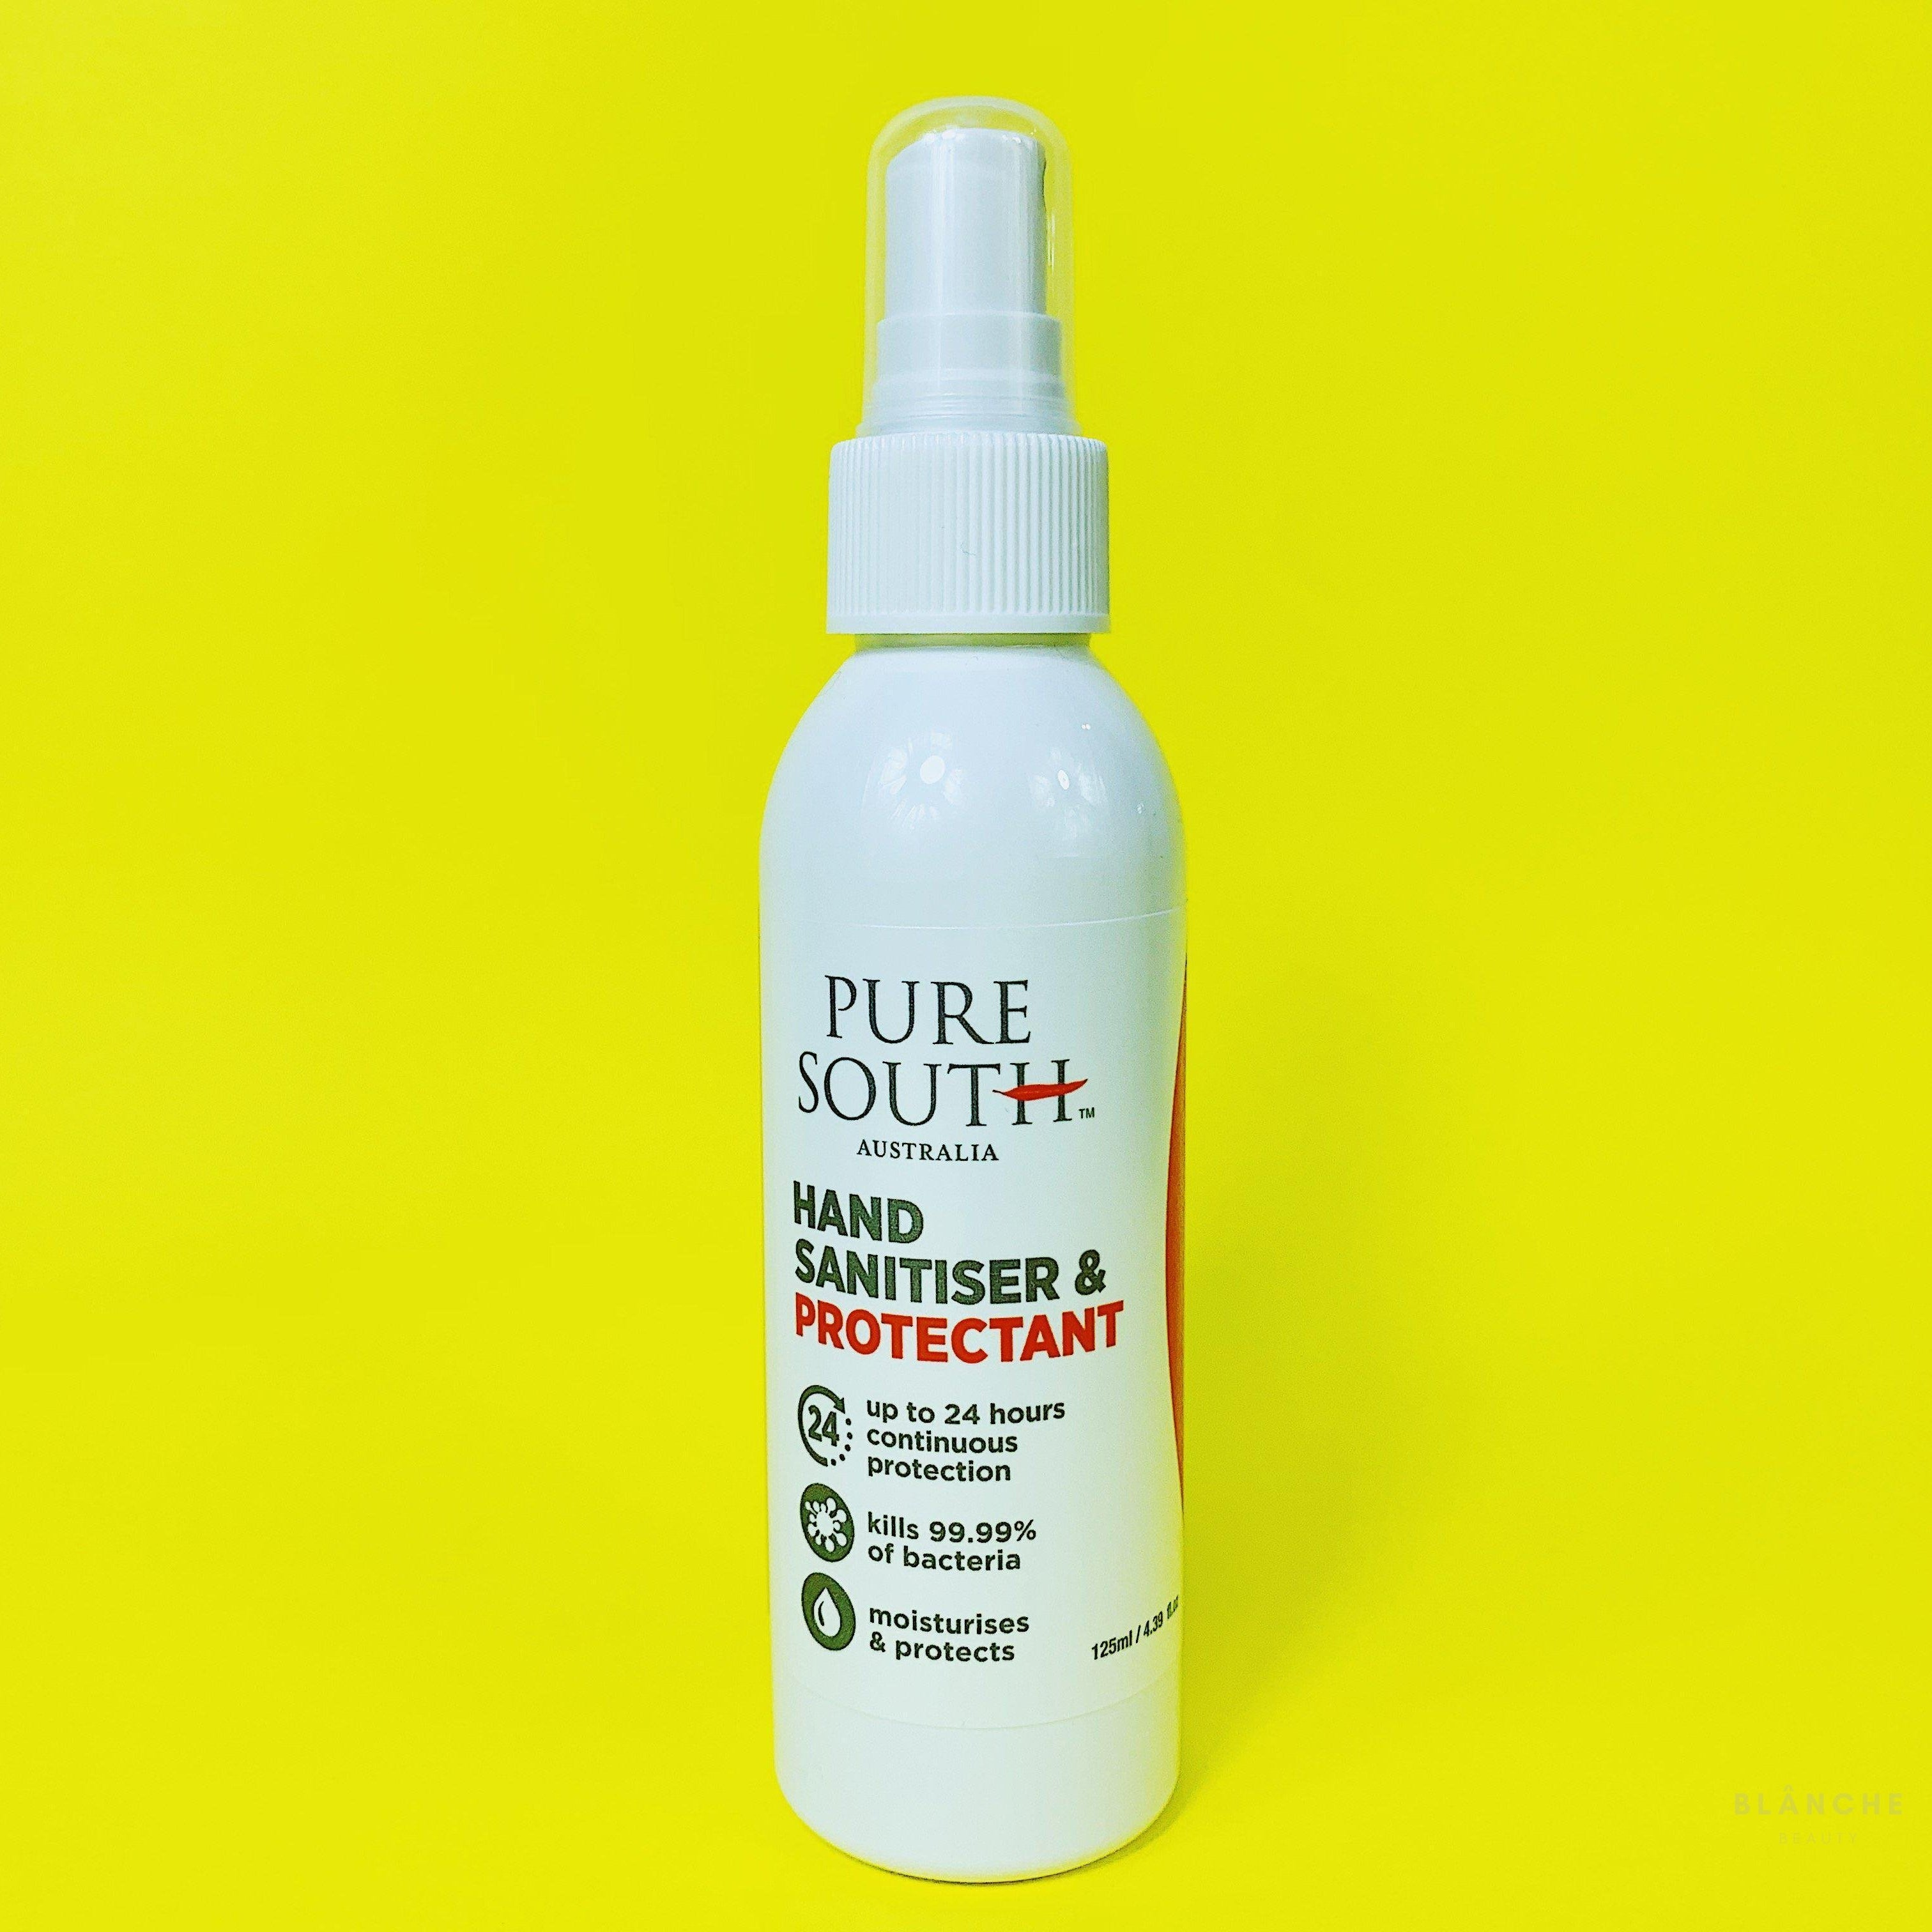 Pure South Australian Hand Sanitiser 24hr Protectant Commercial Grade-Blânche Beauty